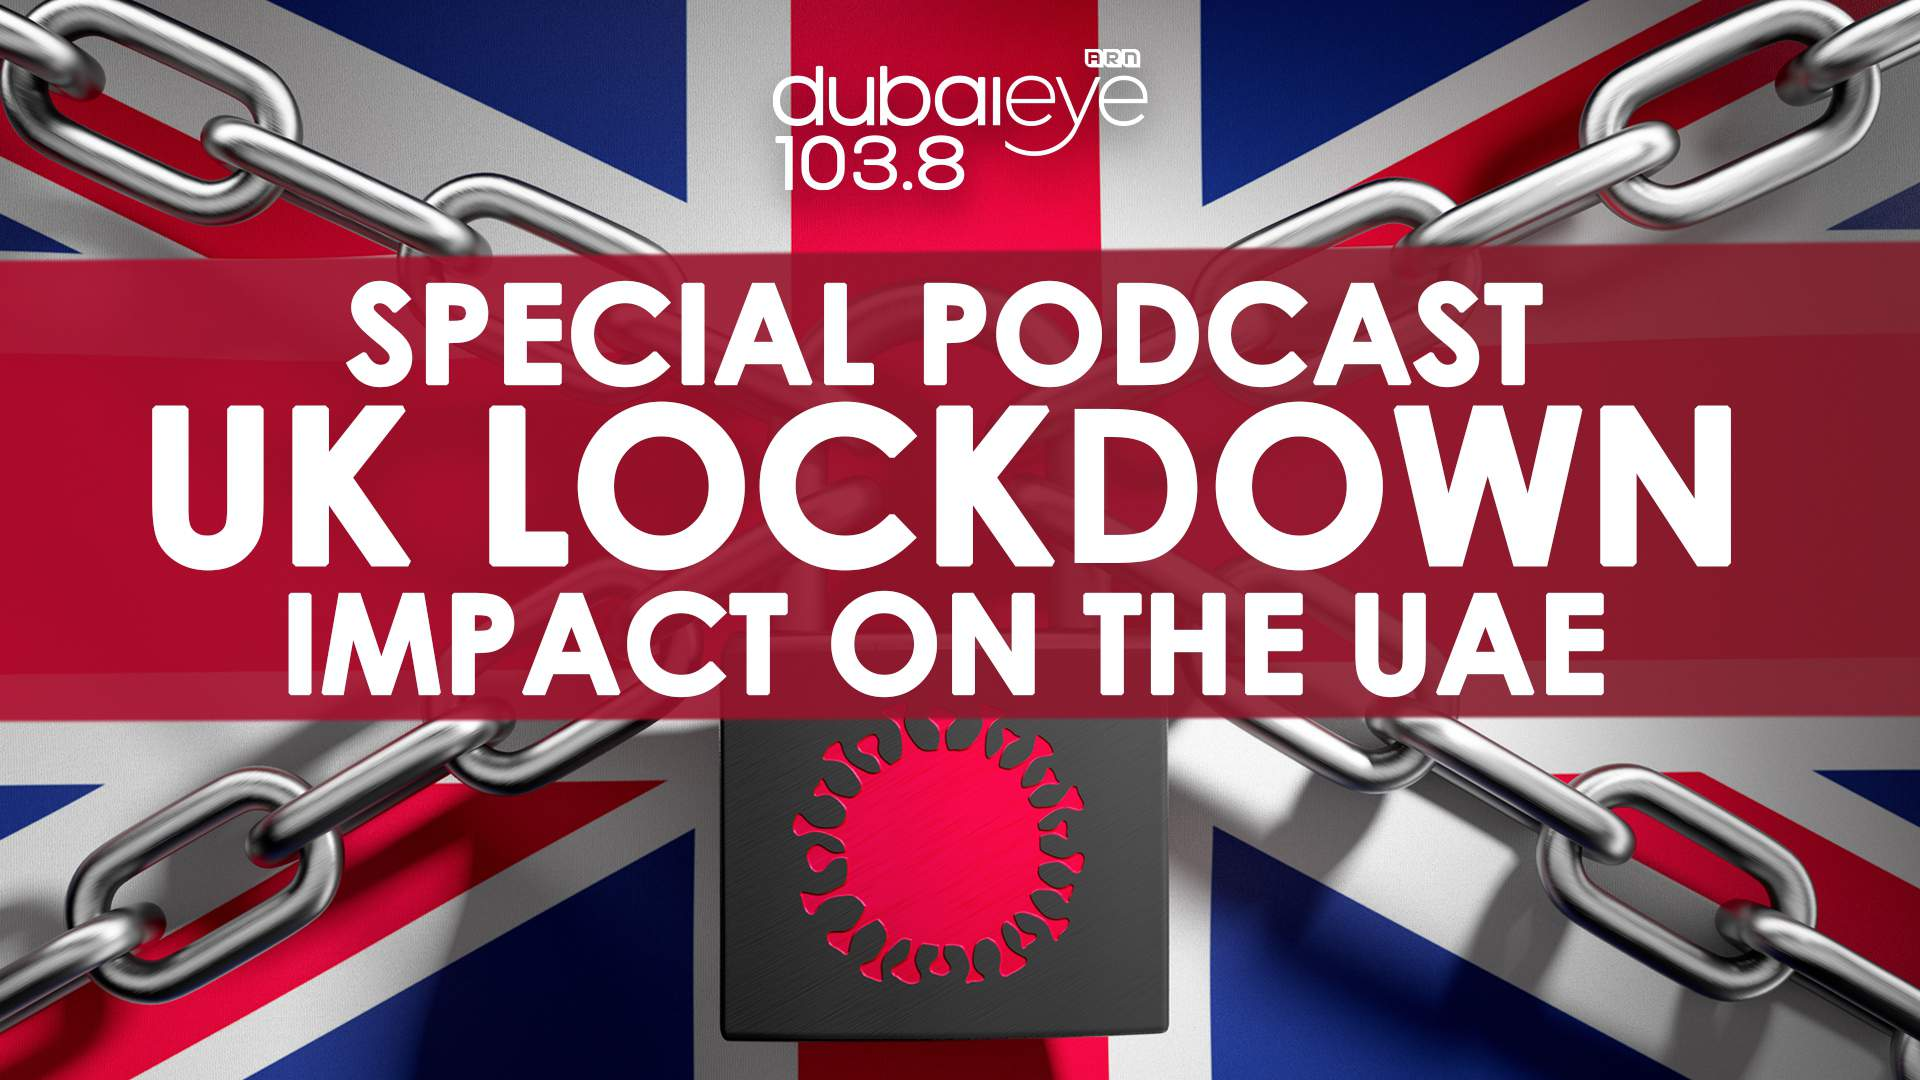 Special Podcast UK Lockdown : Impact On The UAE